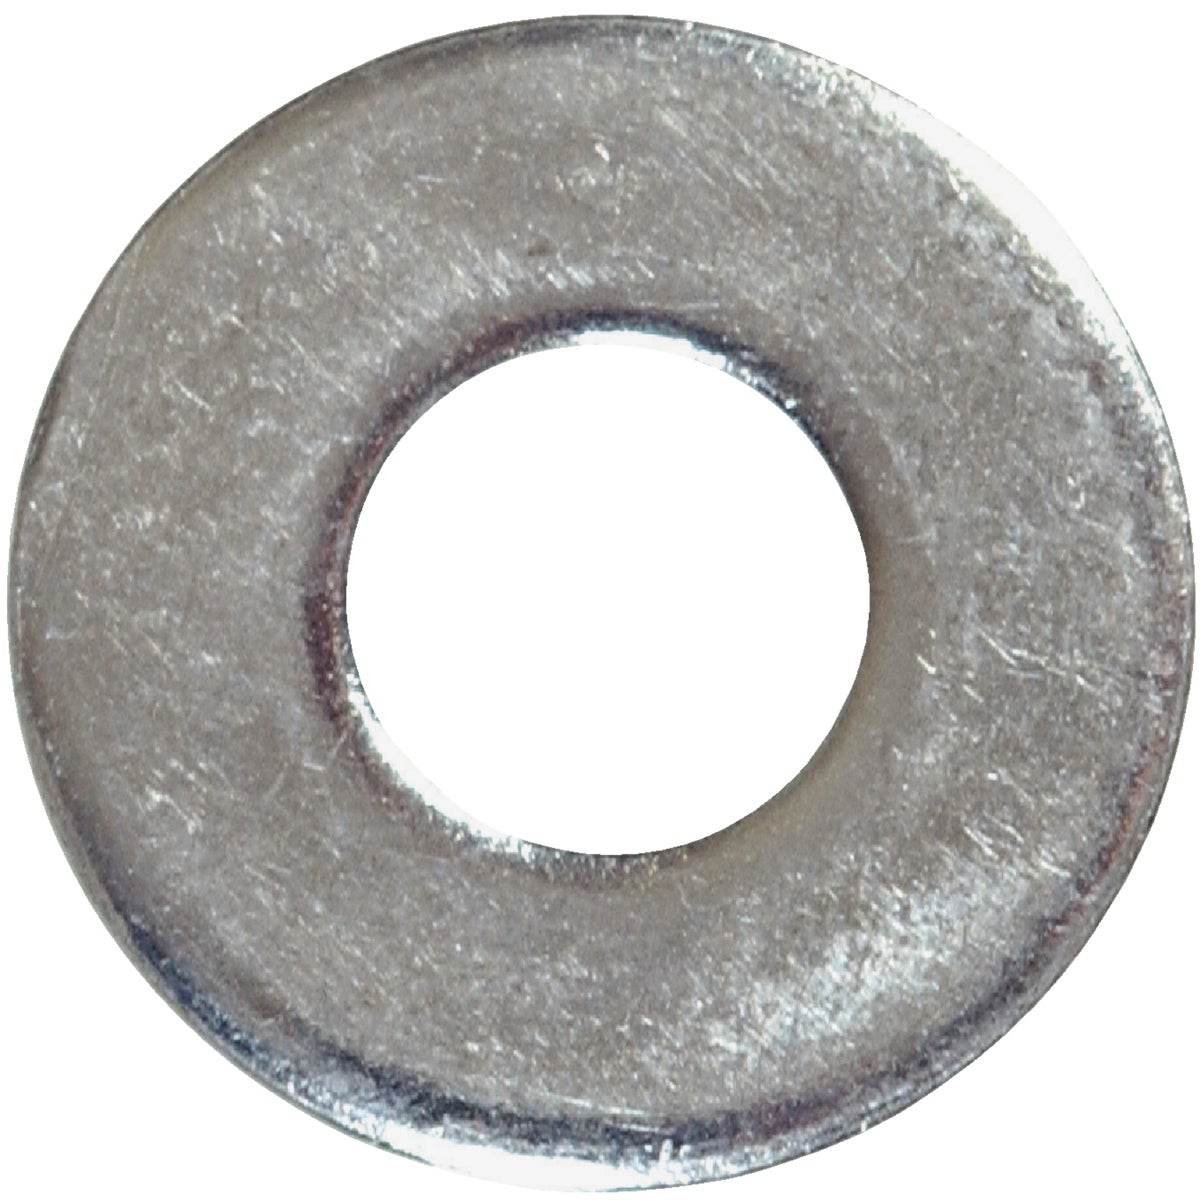 "100PC 1/4"" SAE FL WASHER - 280056 by Hillman Fastener"